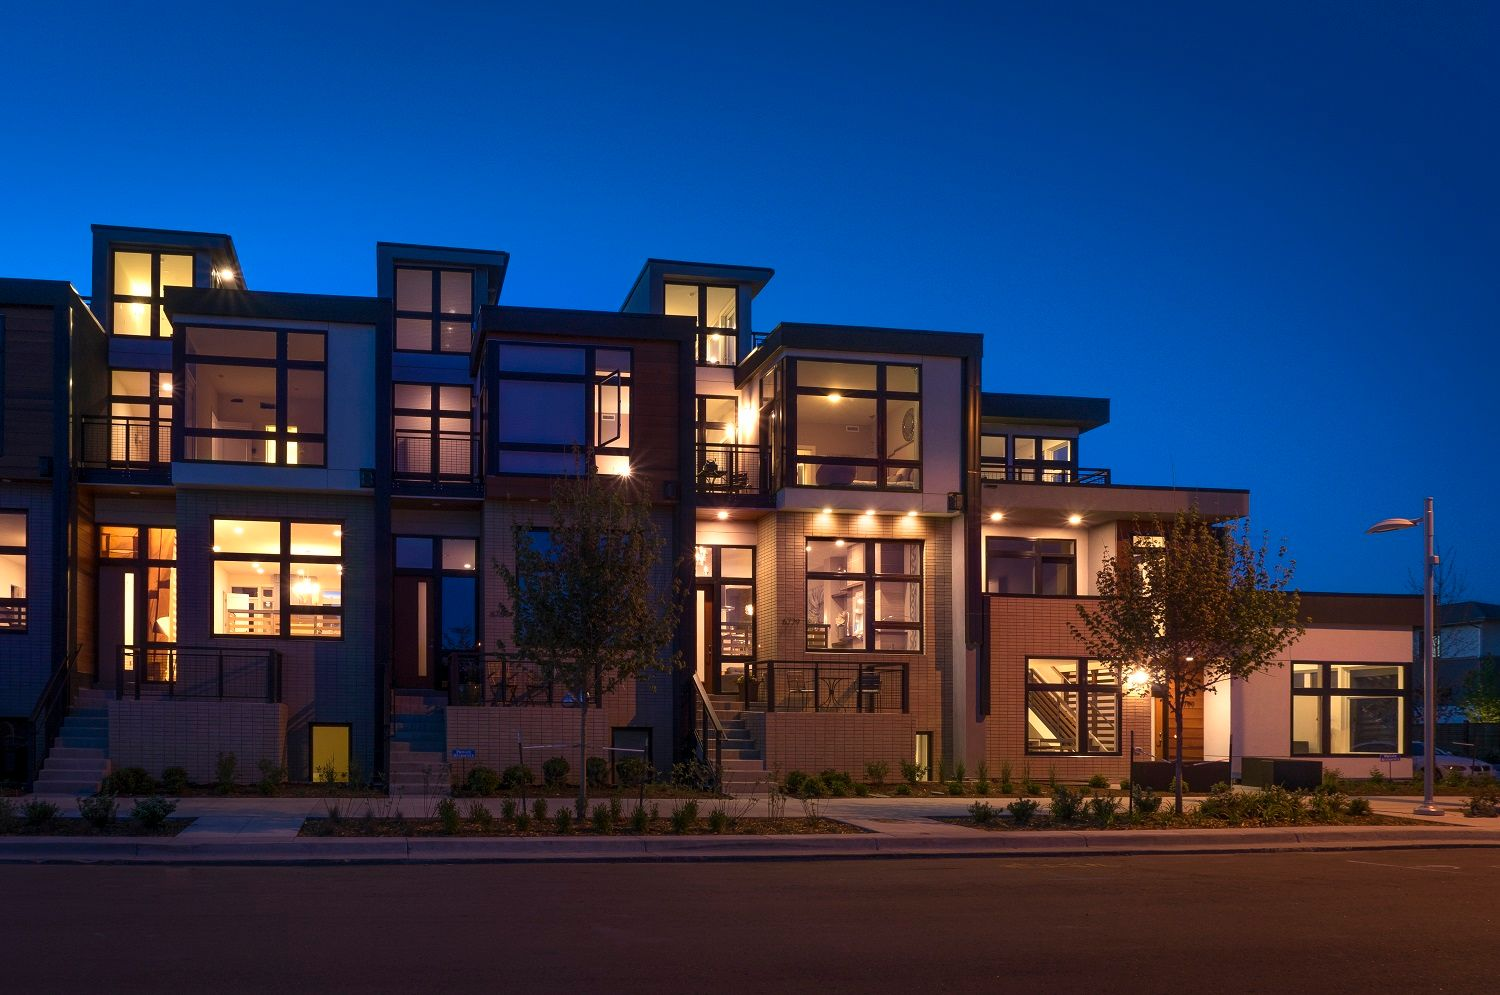 Single Family for Active at Cityhomes At Boulevard One - Matador Series - Main-Floor Master End Unit 6779 East Lowry Boulevard Denver, Colorado 80230 United States